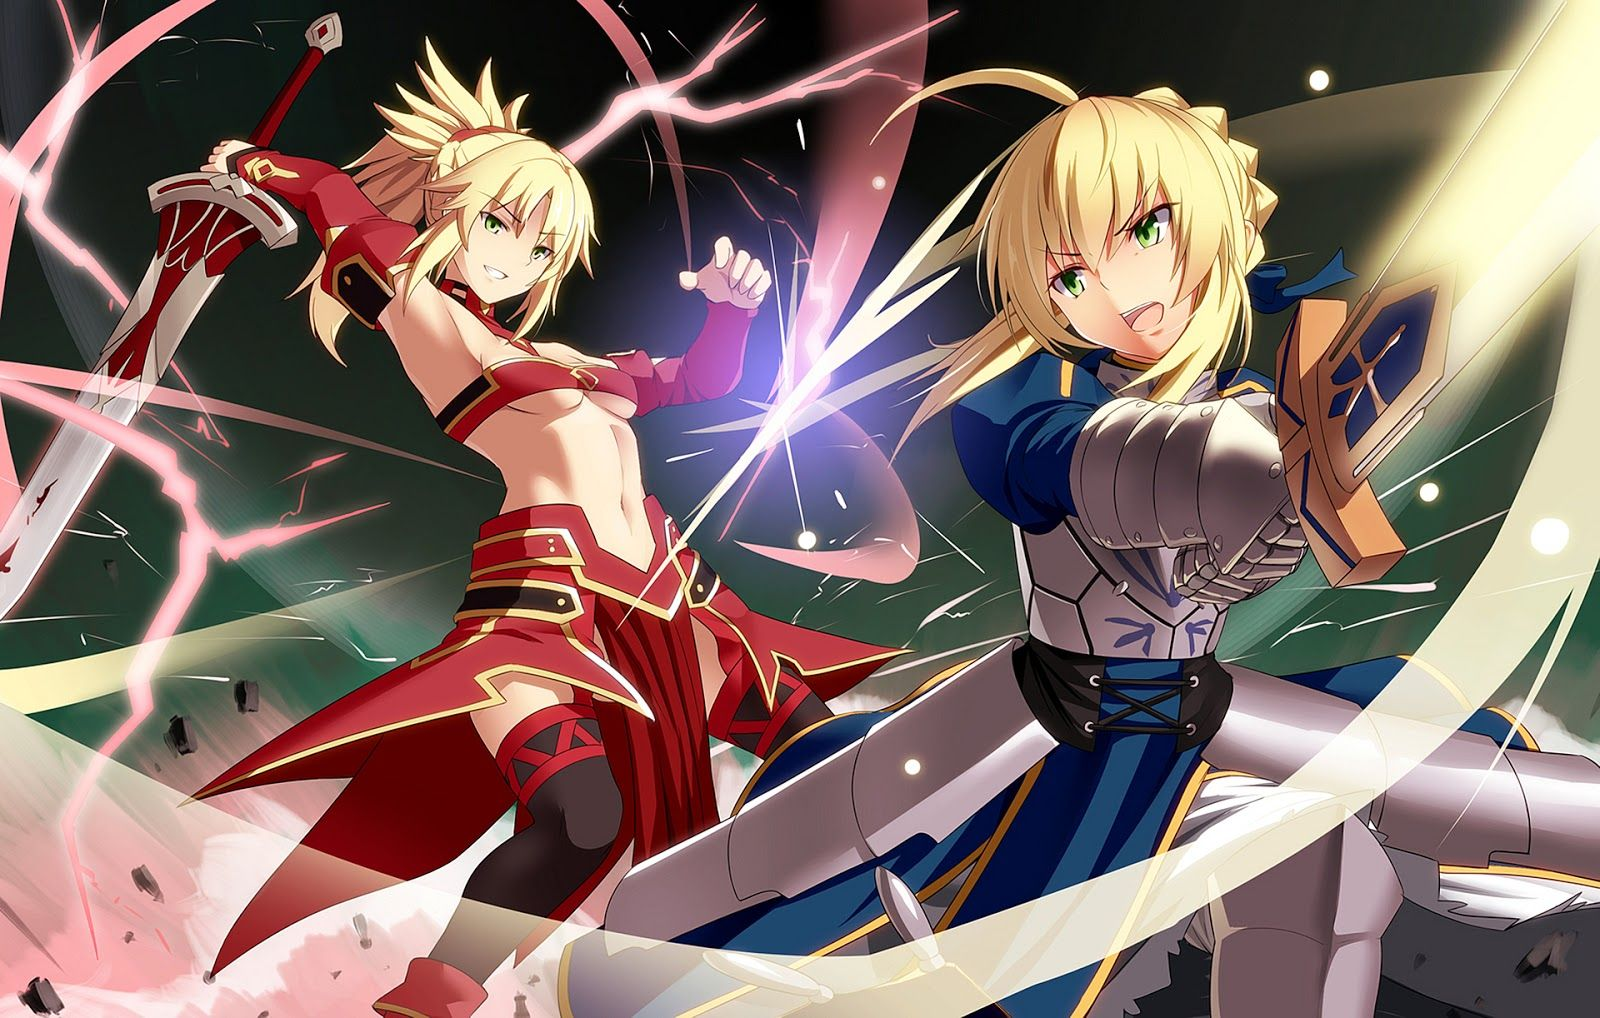 Mordred And Arthur Fate Apocrypha Pinterest Stay Night Free Shipping Ampamp Strap Lanccelot Watch Aegis Of Bedivere